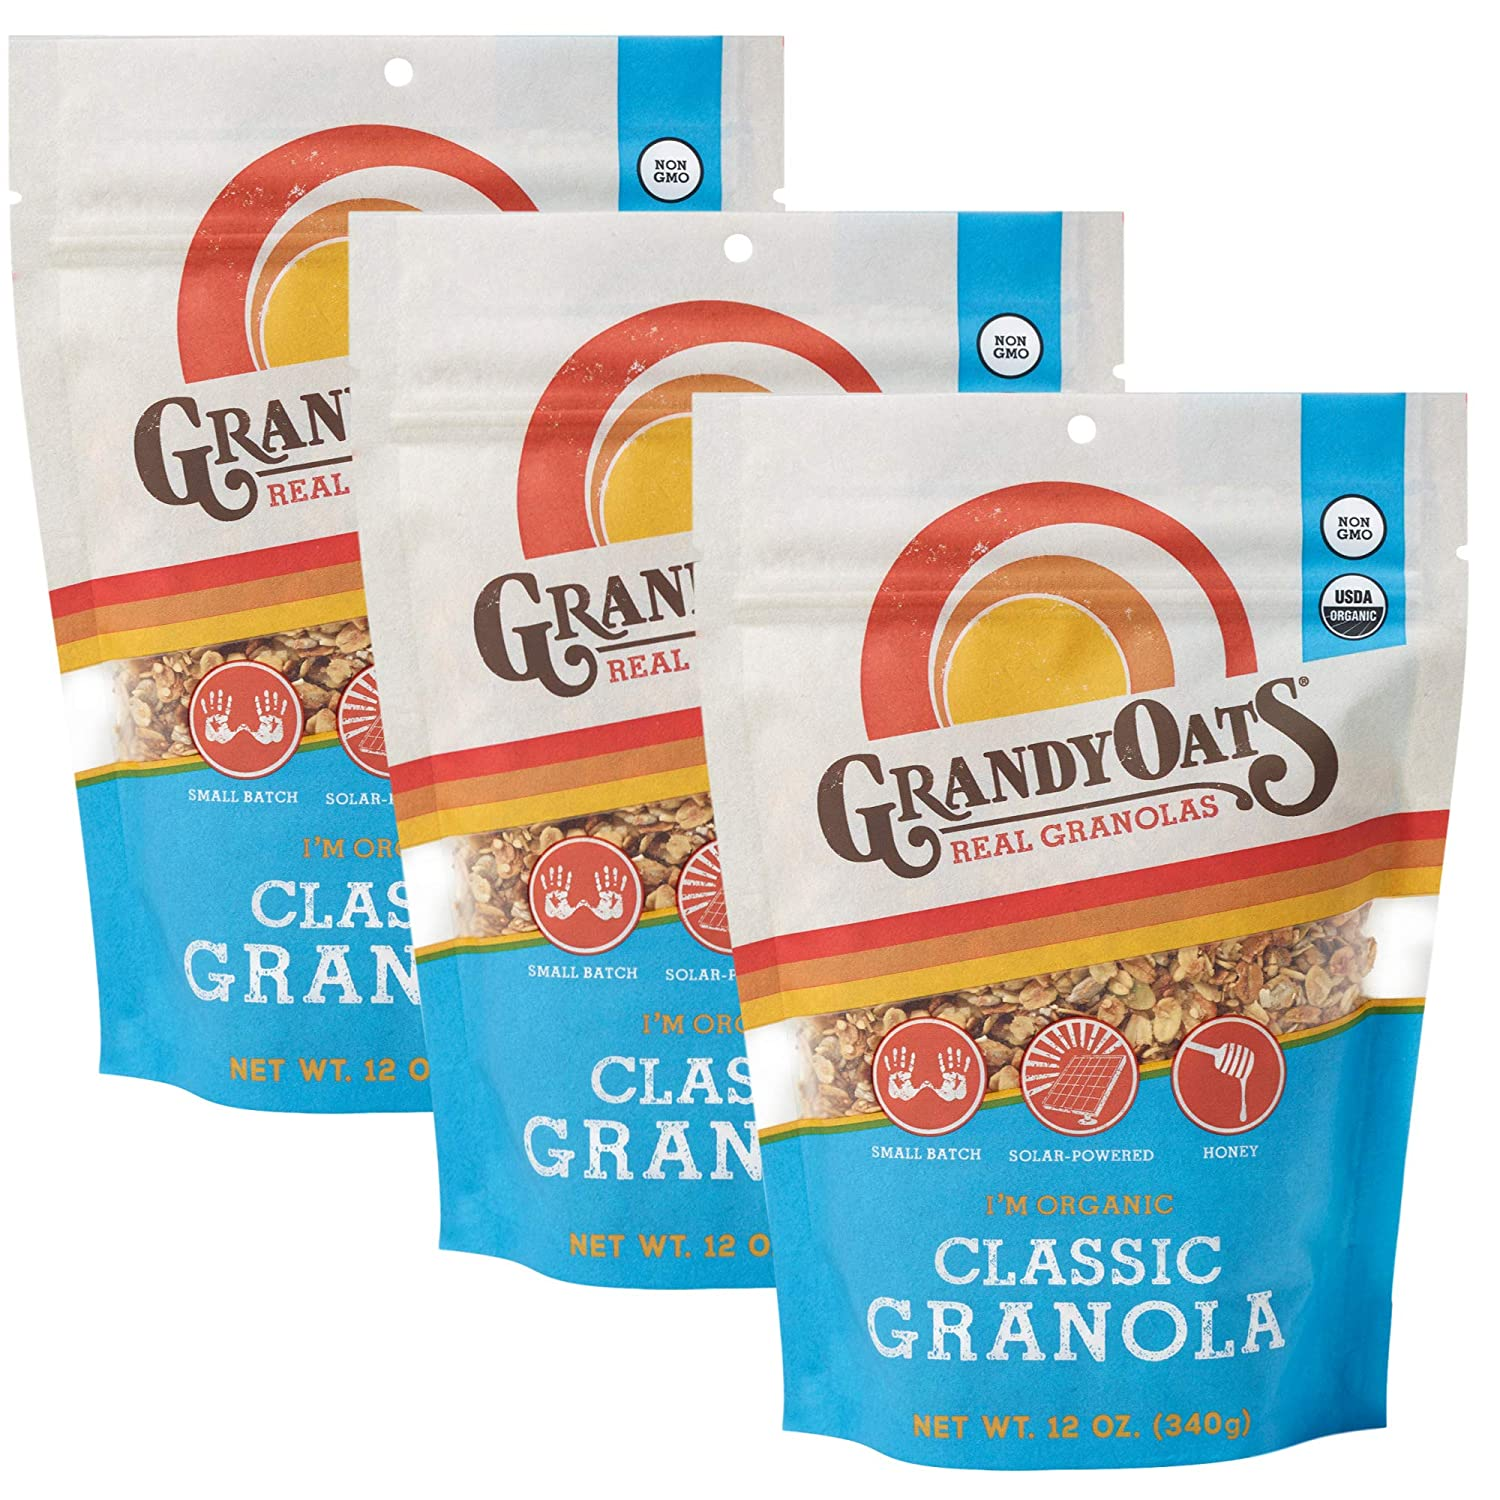 GrandyOats Classic Granola, Certified Organic Granola Cereal, Low Sugar - Made with Oats, Pumpkin Seeds, Walnuts and Cashews, 12oz Bags, Bulk Pack of 3